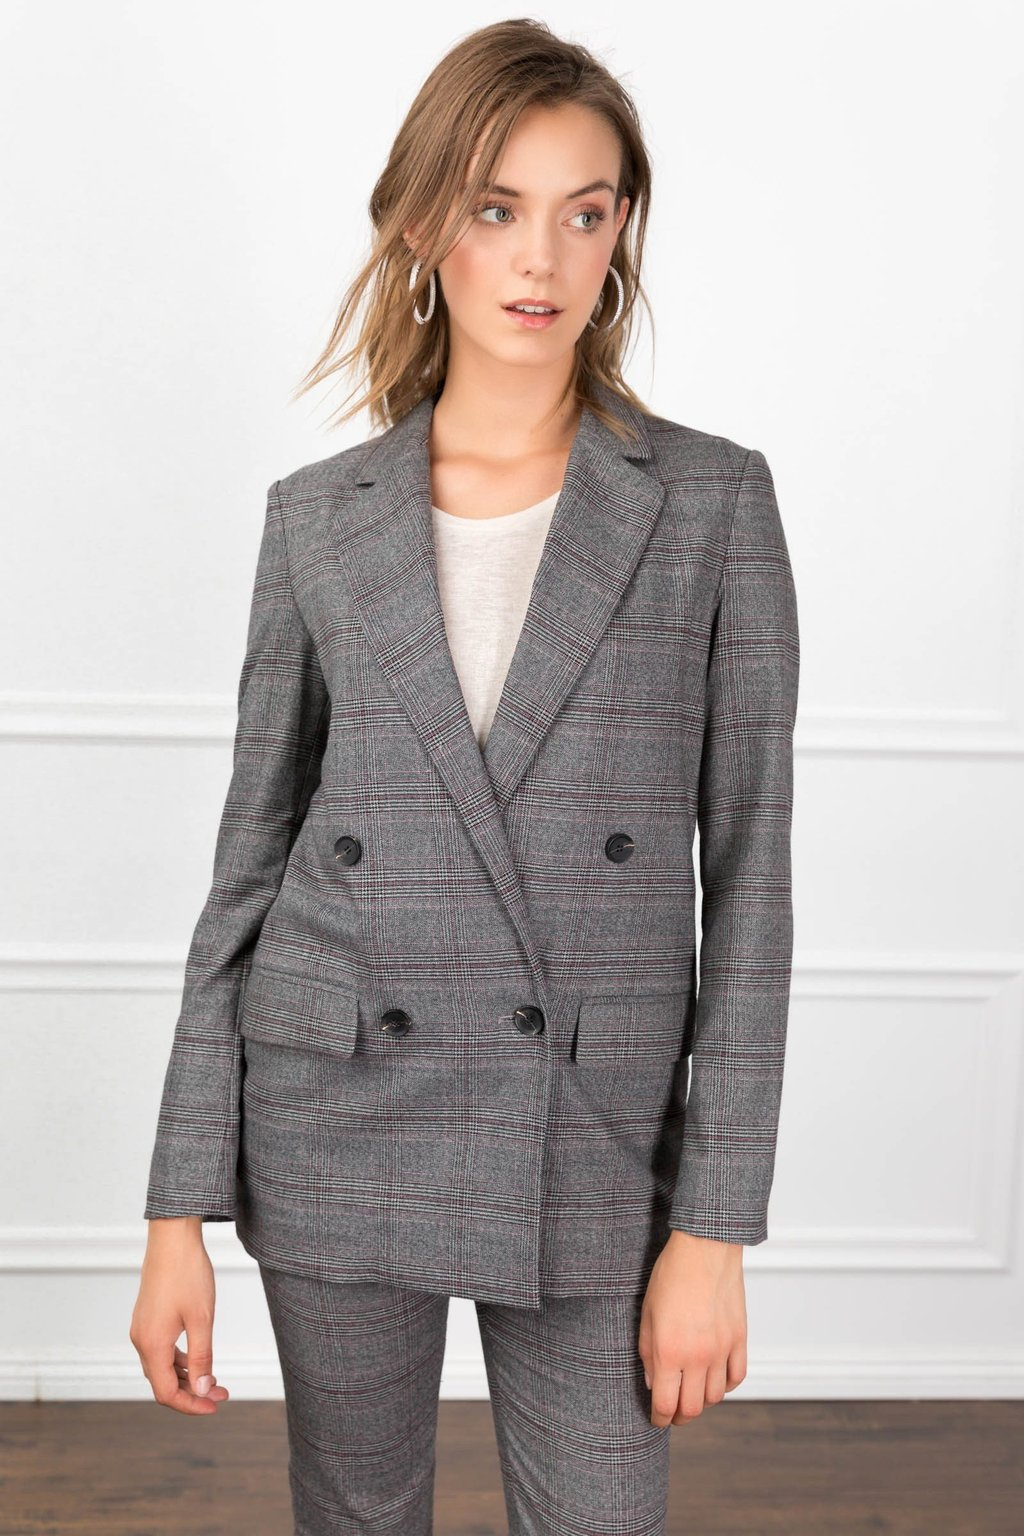 Aubrey Blazer Co-ord Suit Set for women by J.ING women's fashion clothing